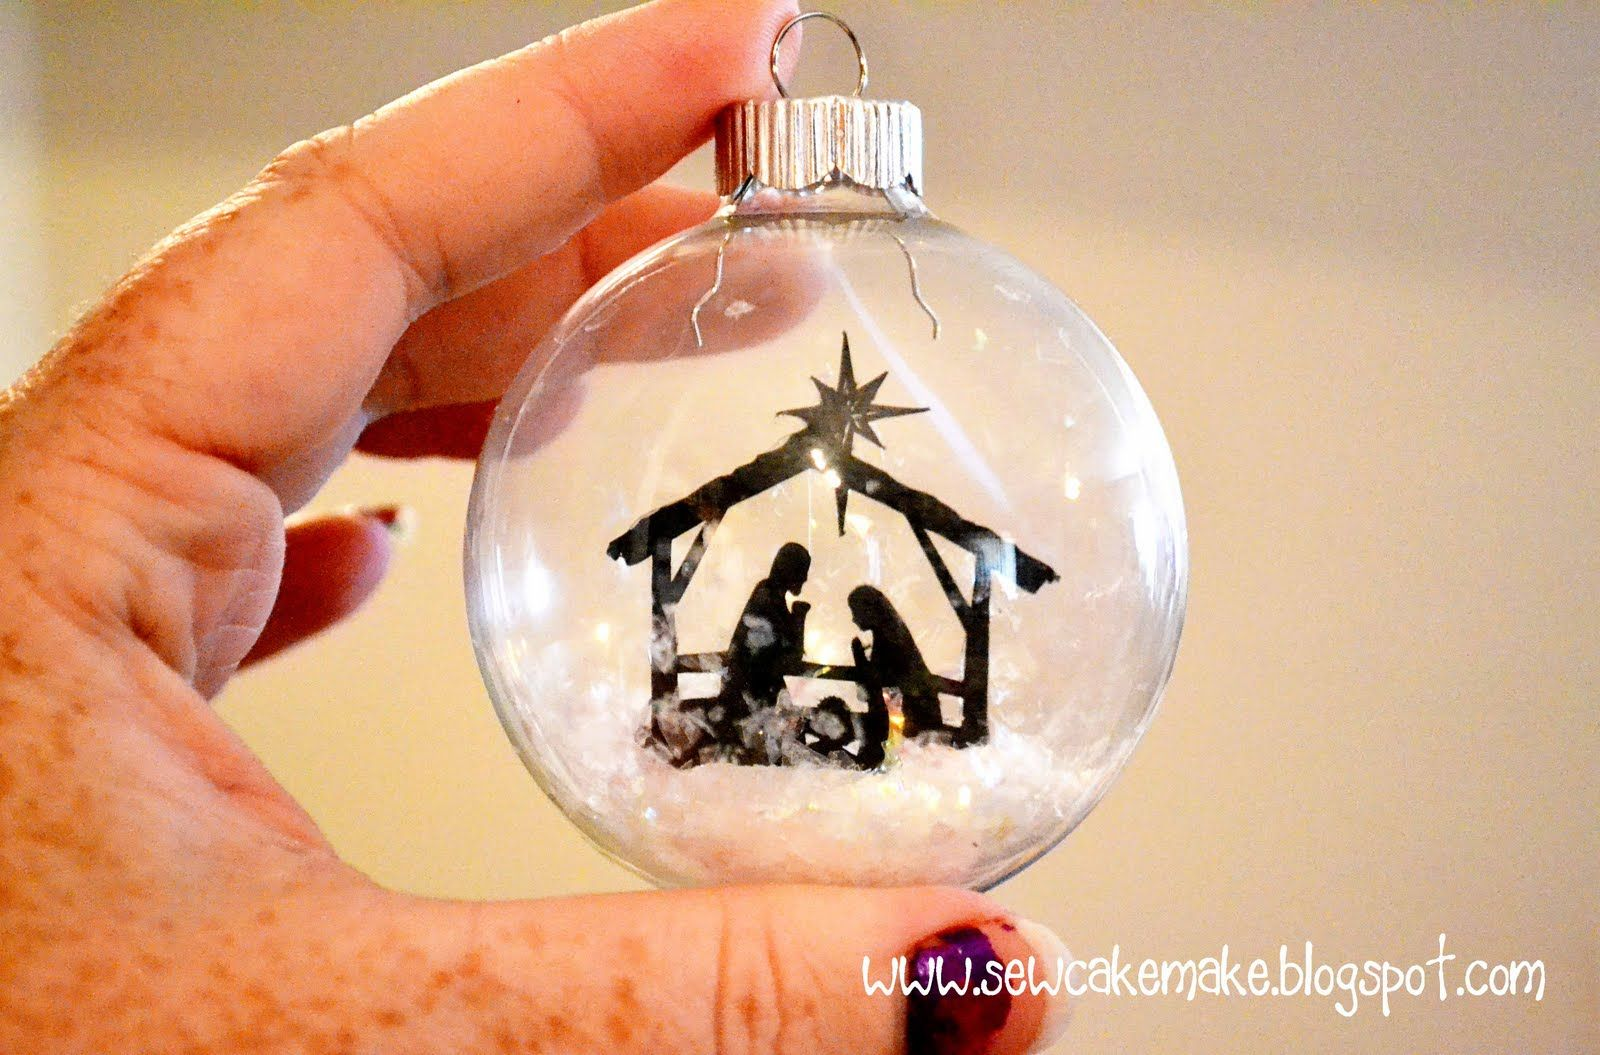 Christmas Ornaments to Make | ... night for an easy to make christmas ornament that amazed me after many